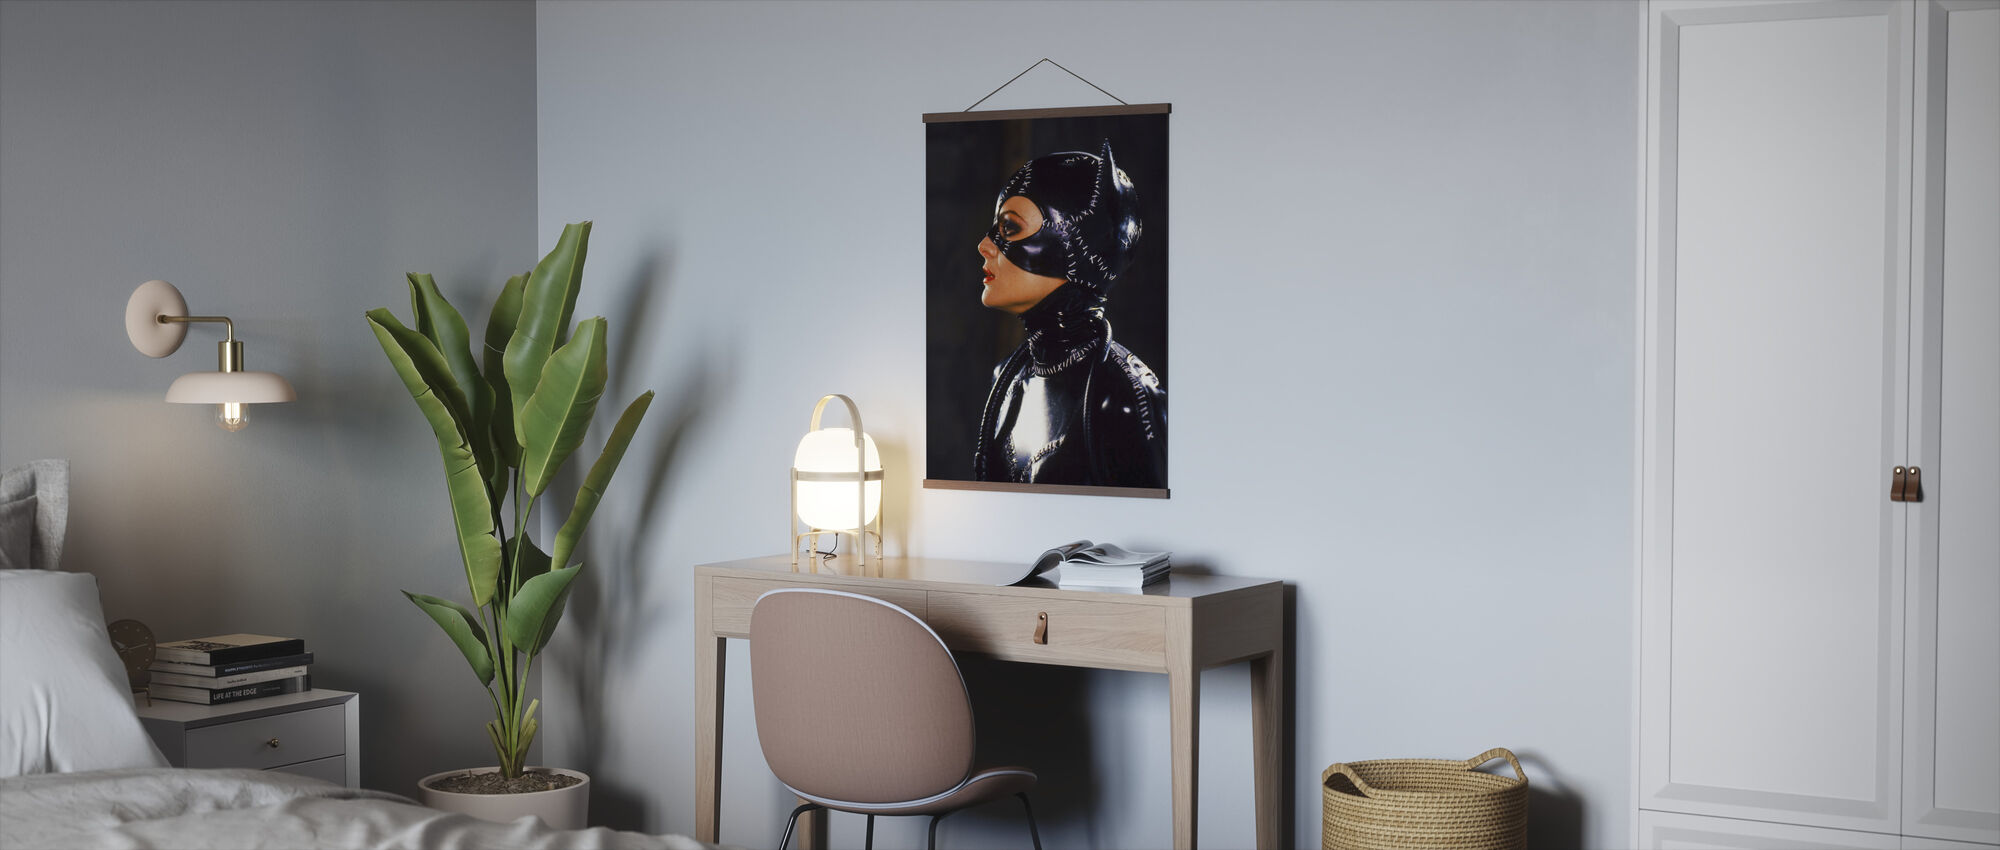 Catwoman - Michelle Pfeiffer - Poster - Office